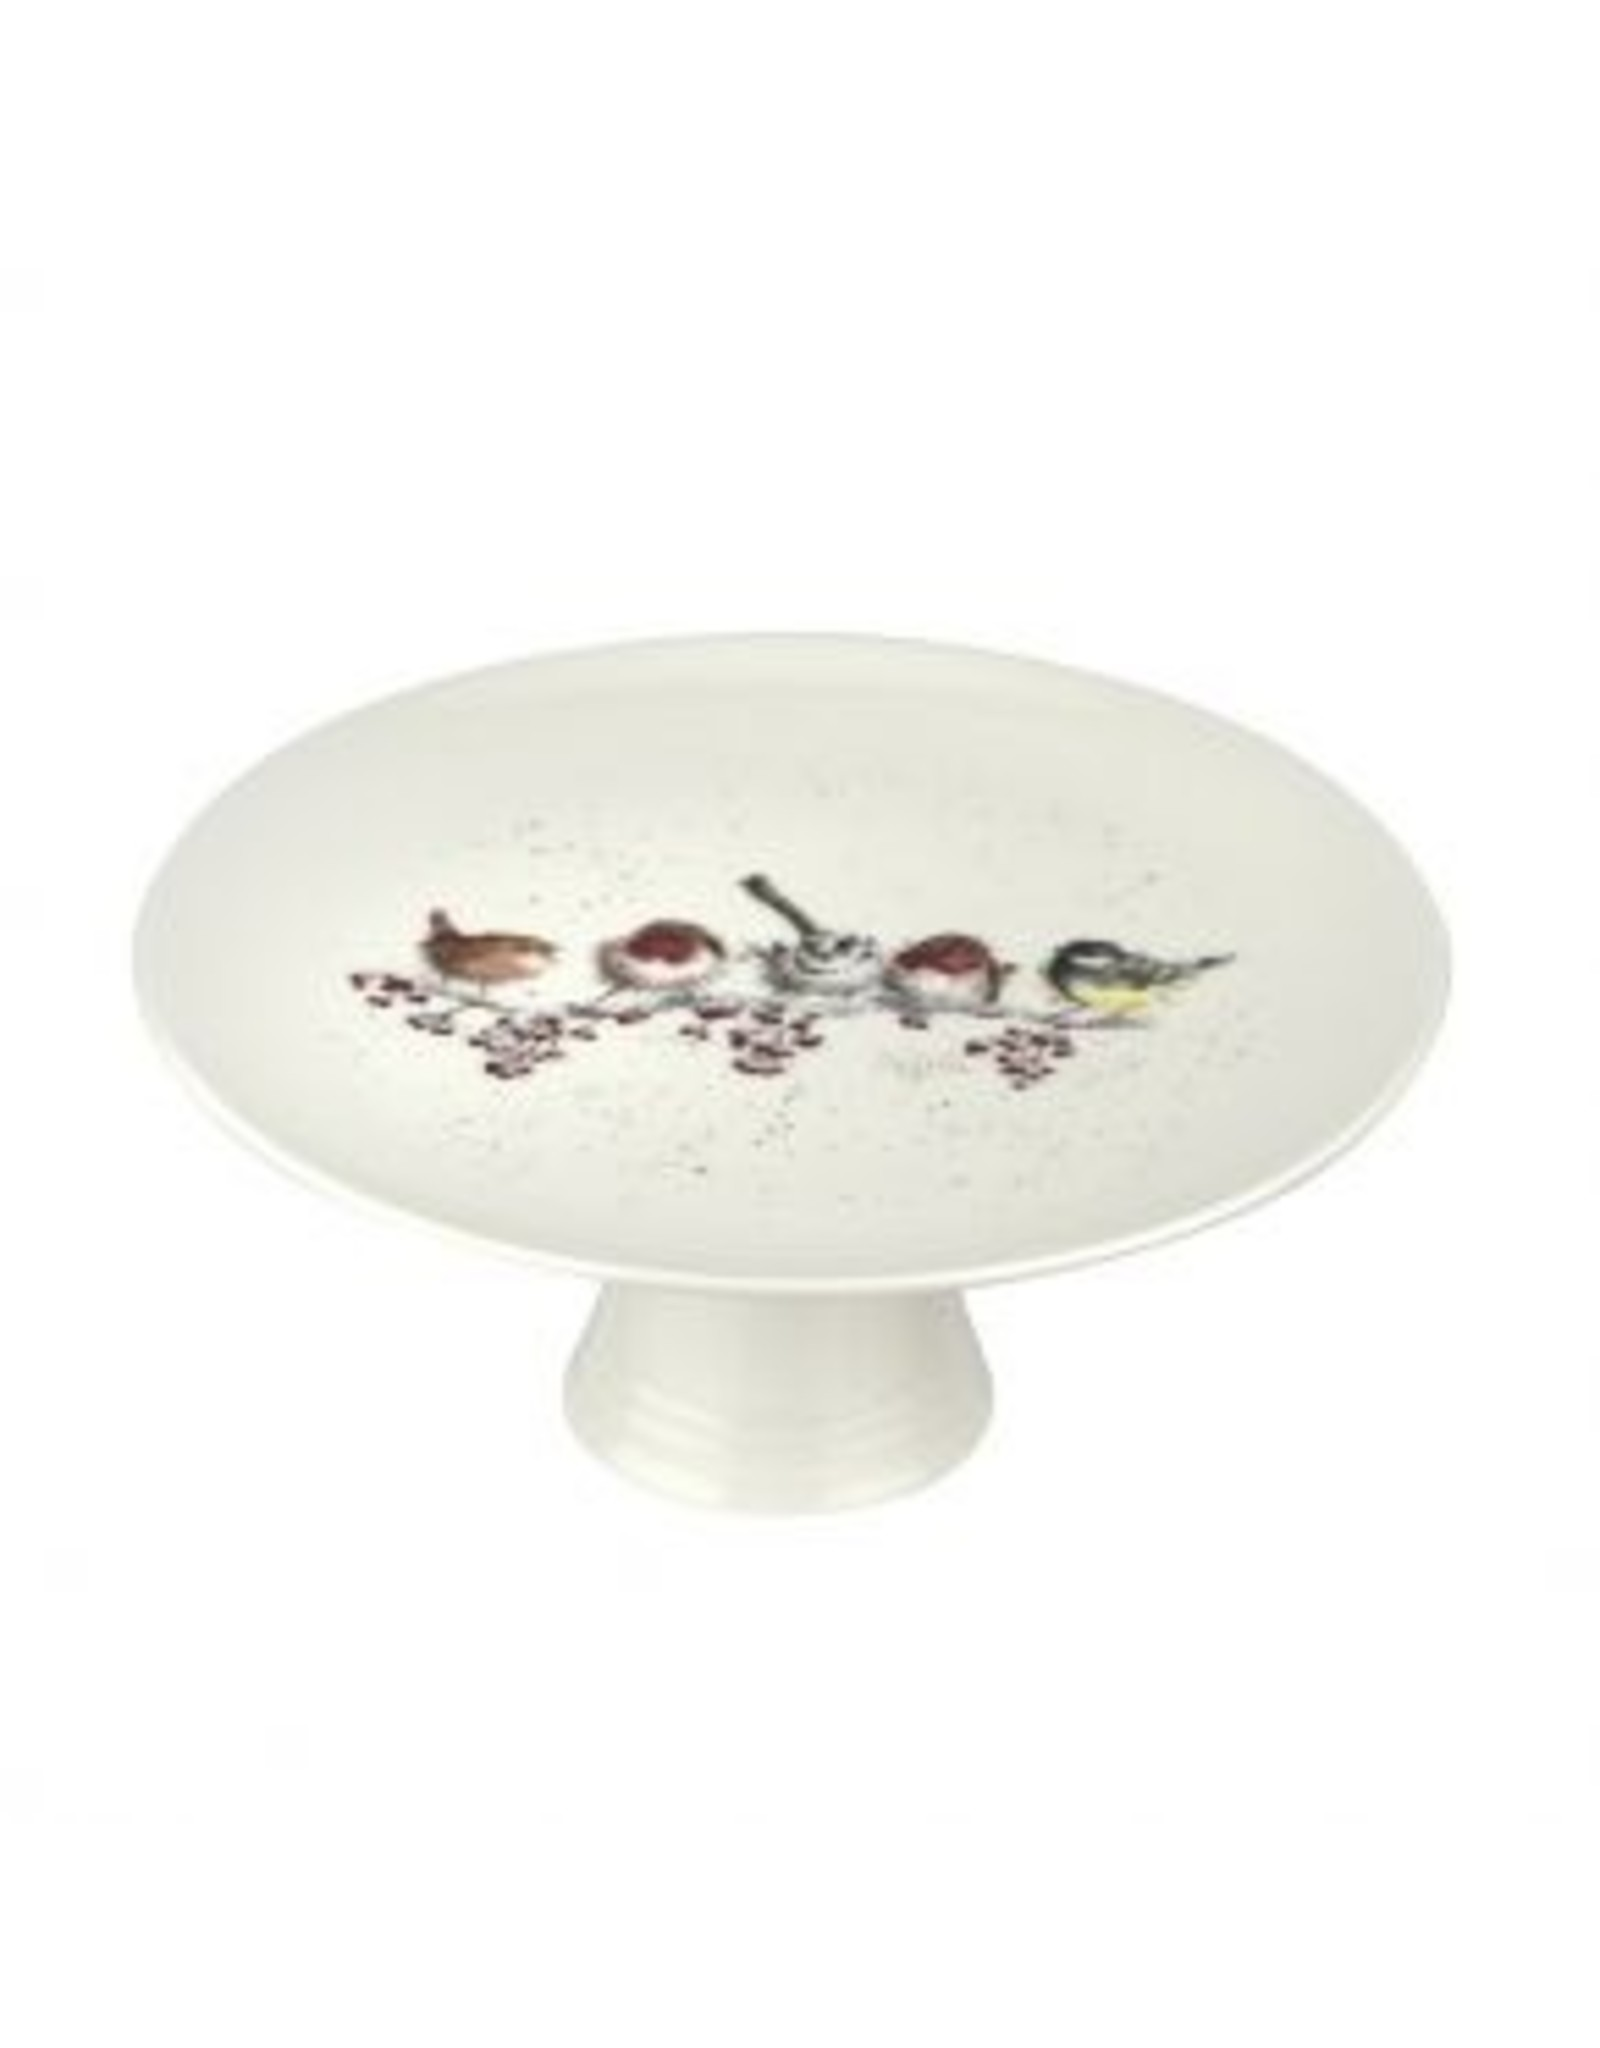 """Wrendale Designs Cake Stand 9.75"""" - One Snowy day"""